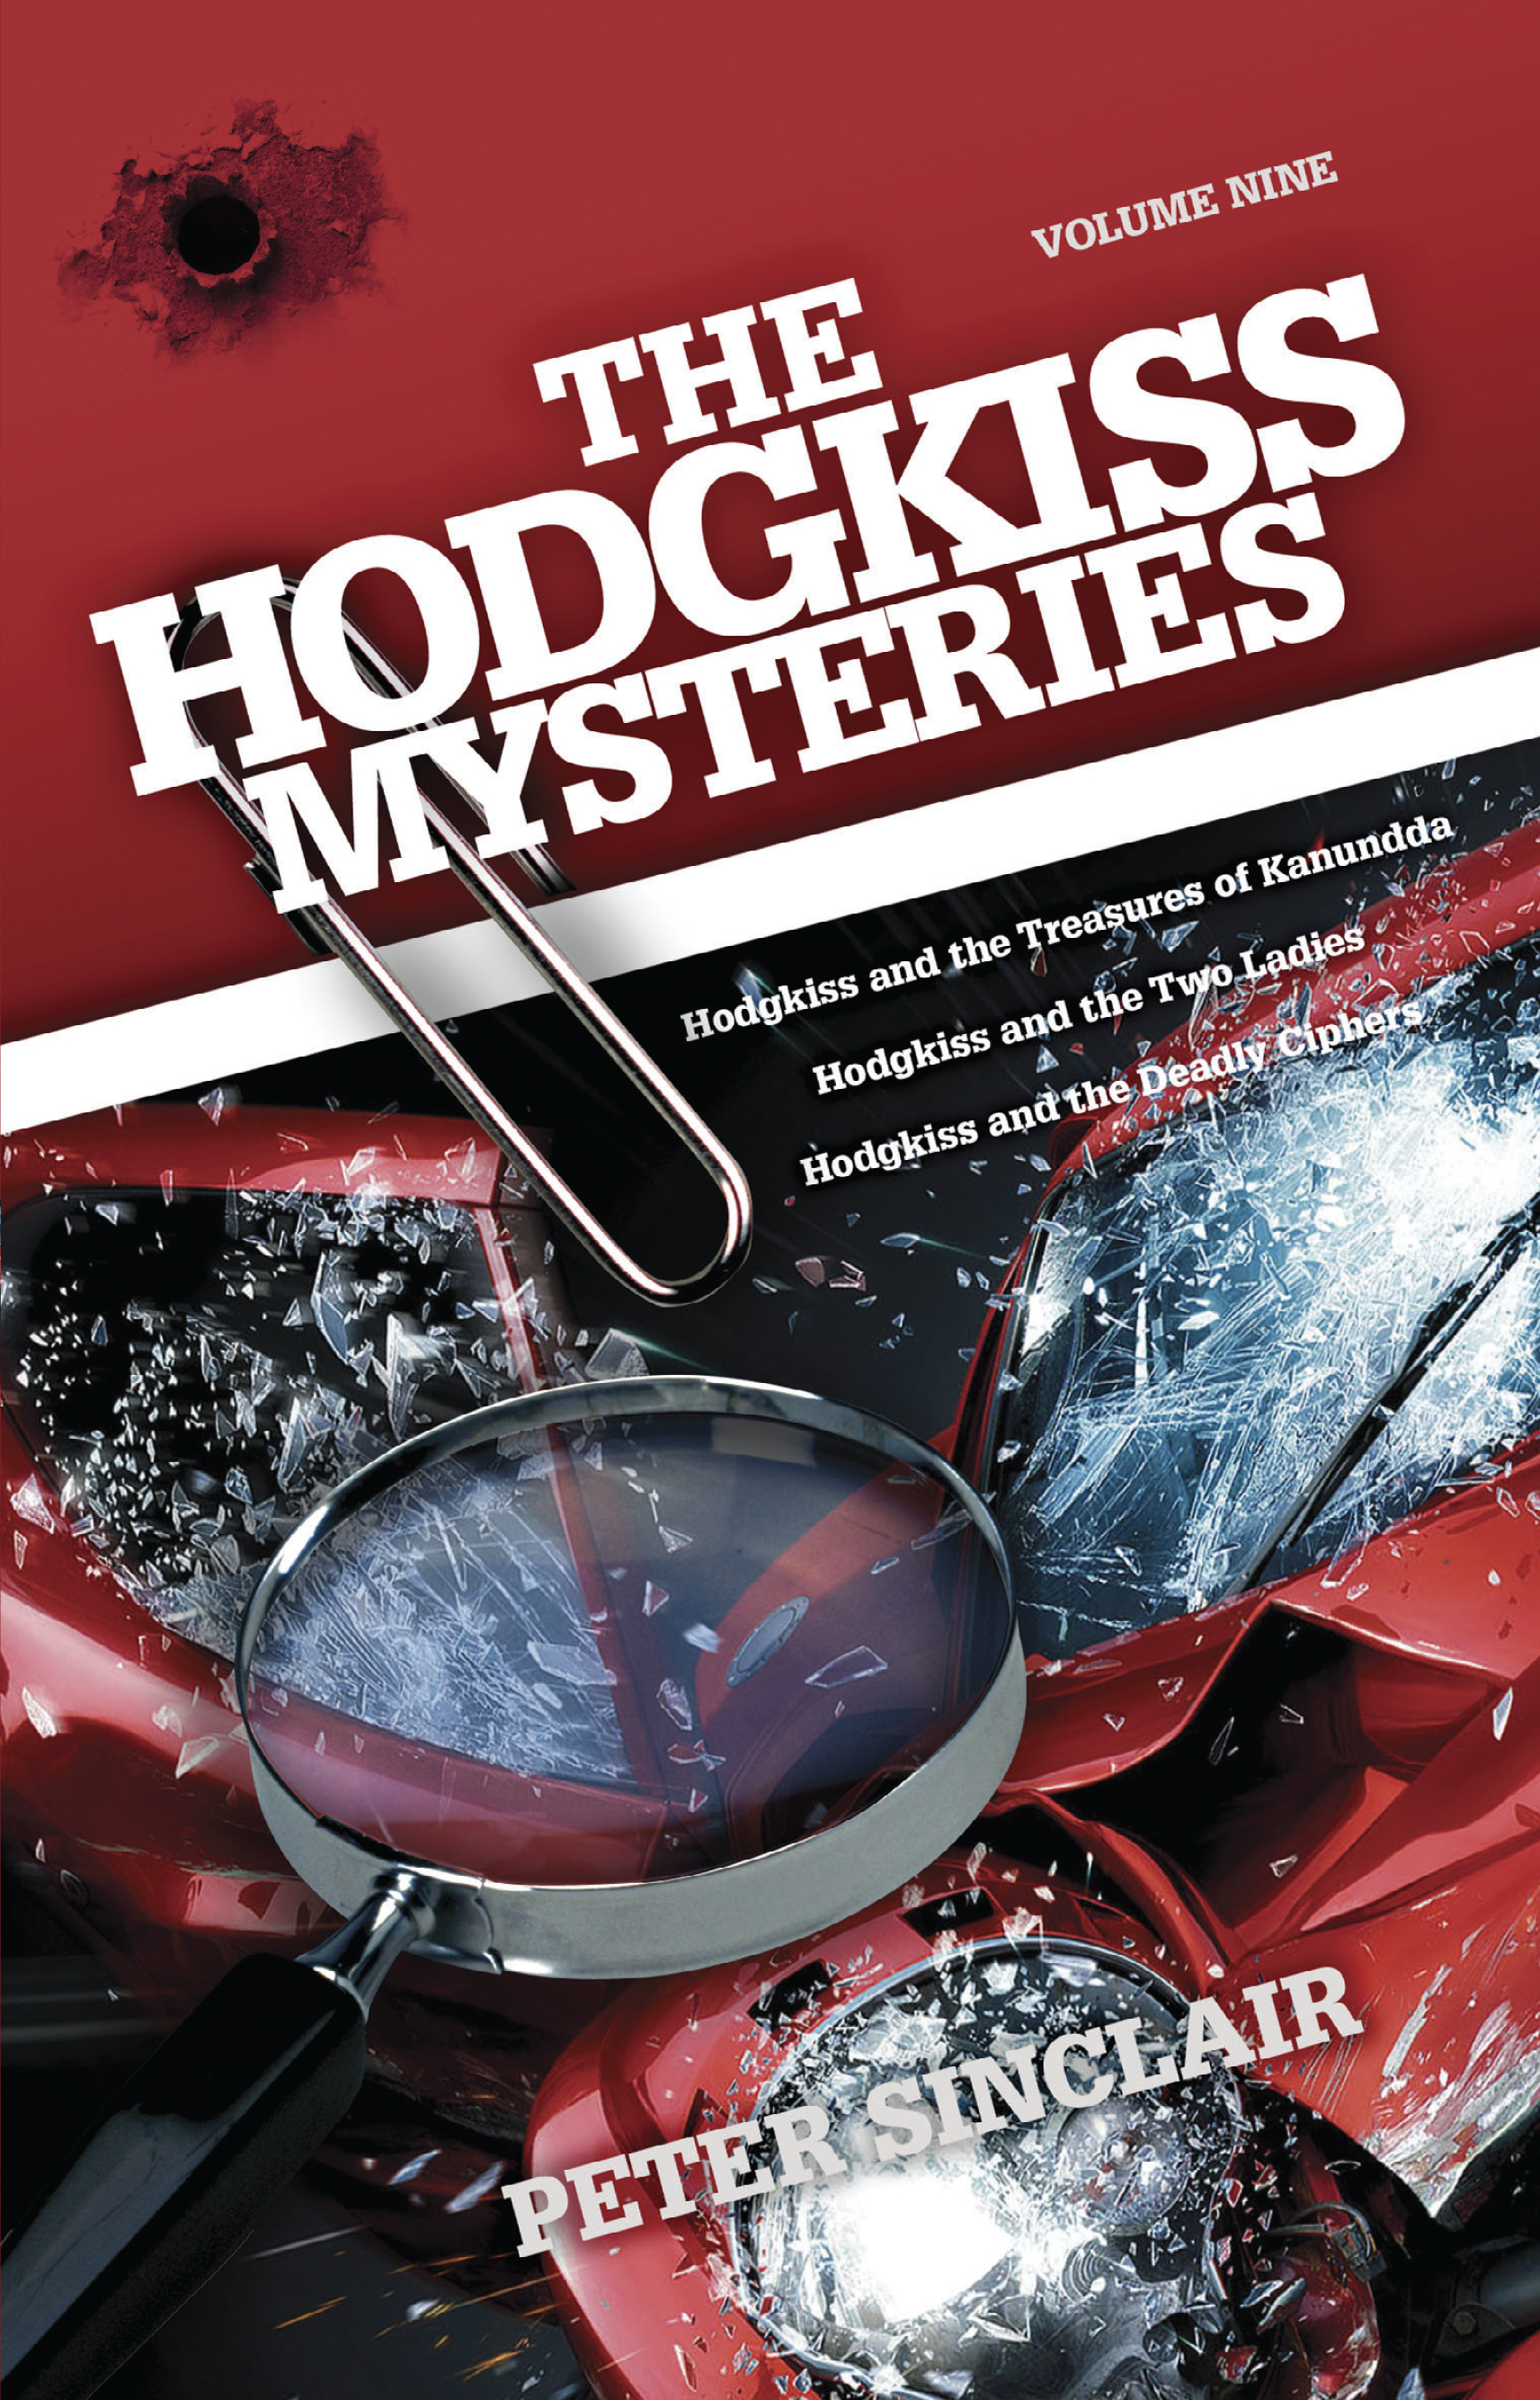 Hodgkiss Mysteries_cover_VOL IX.jpg